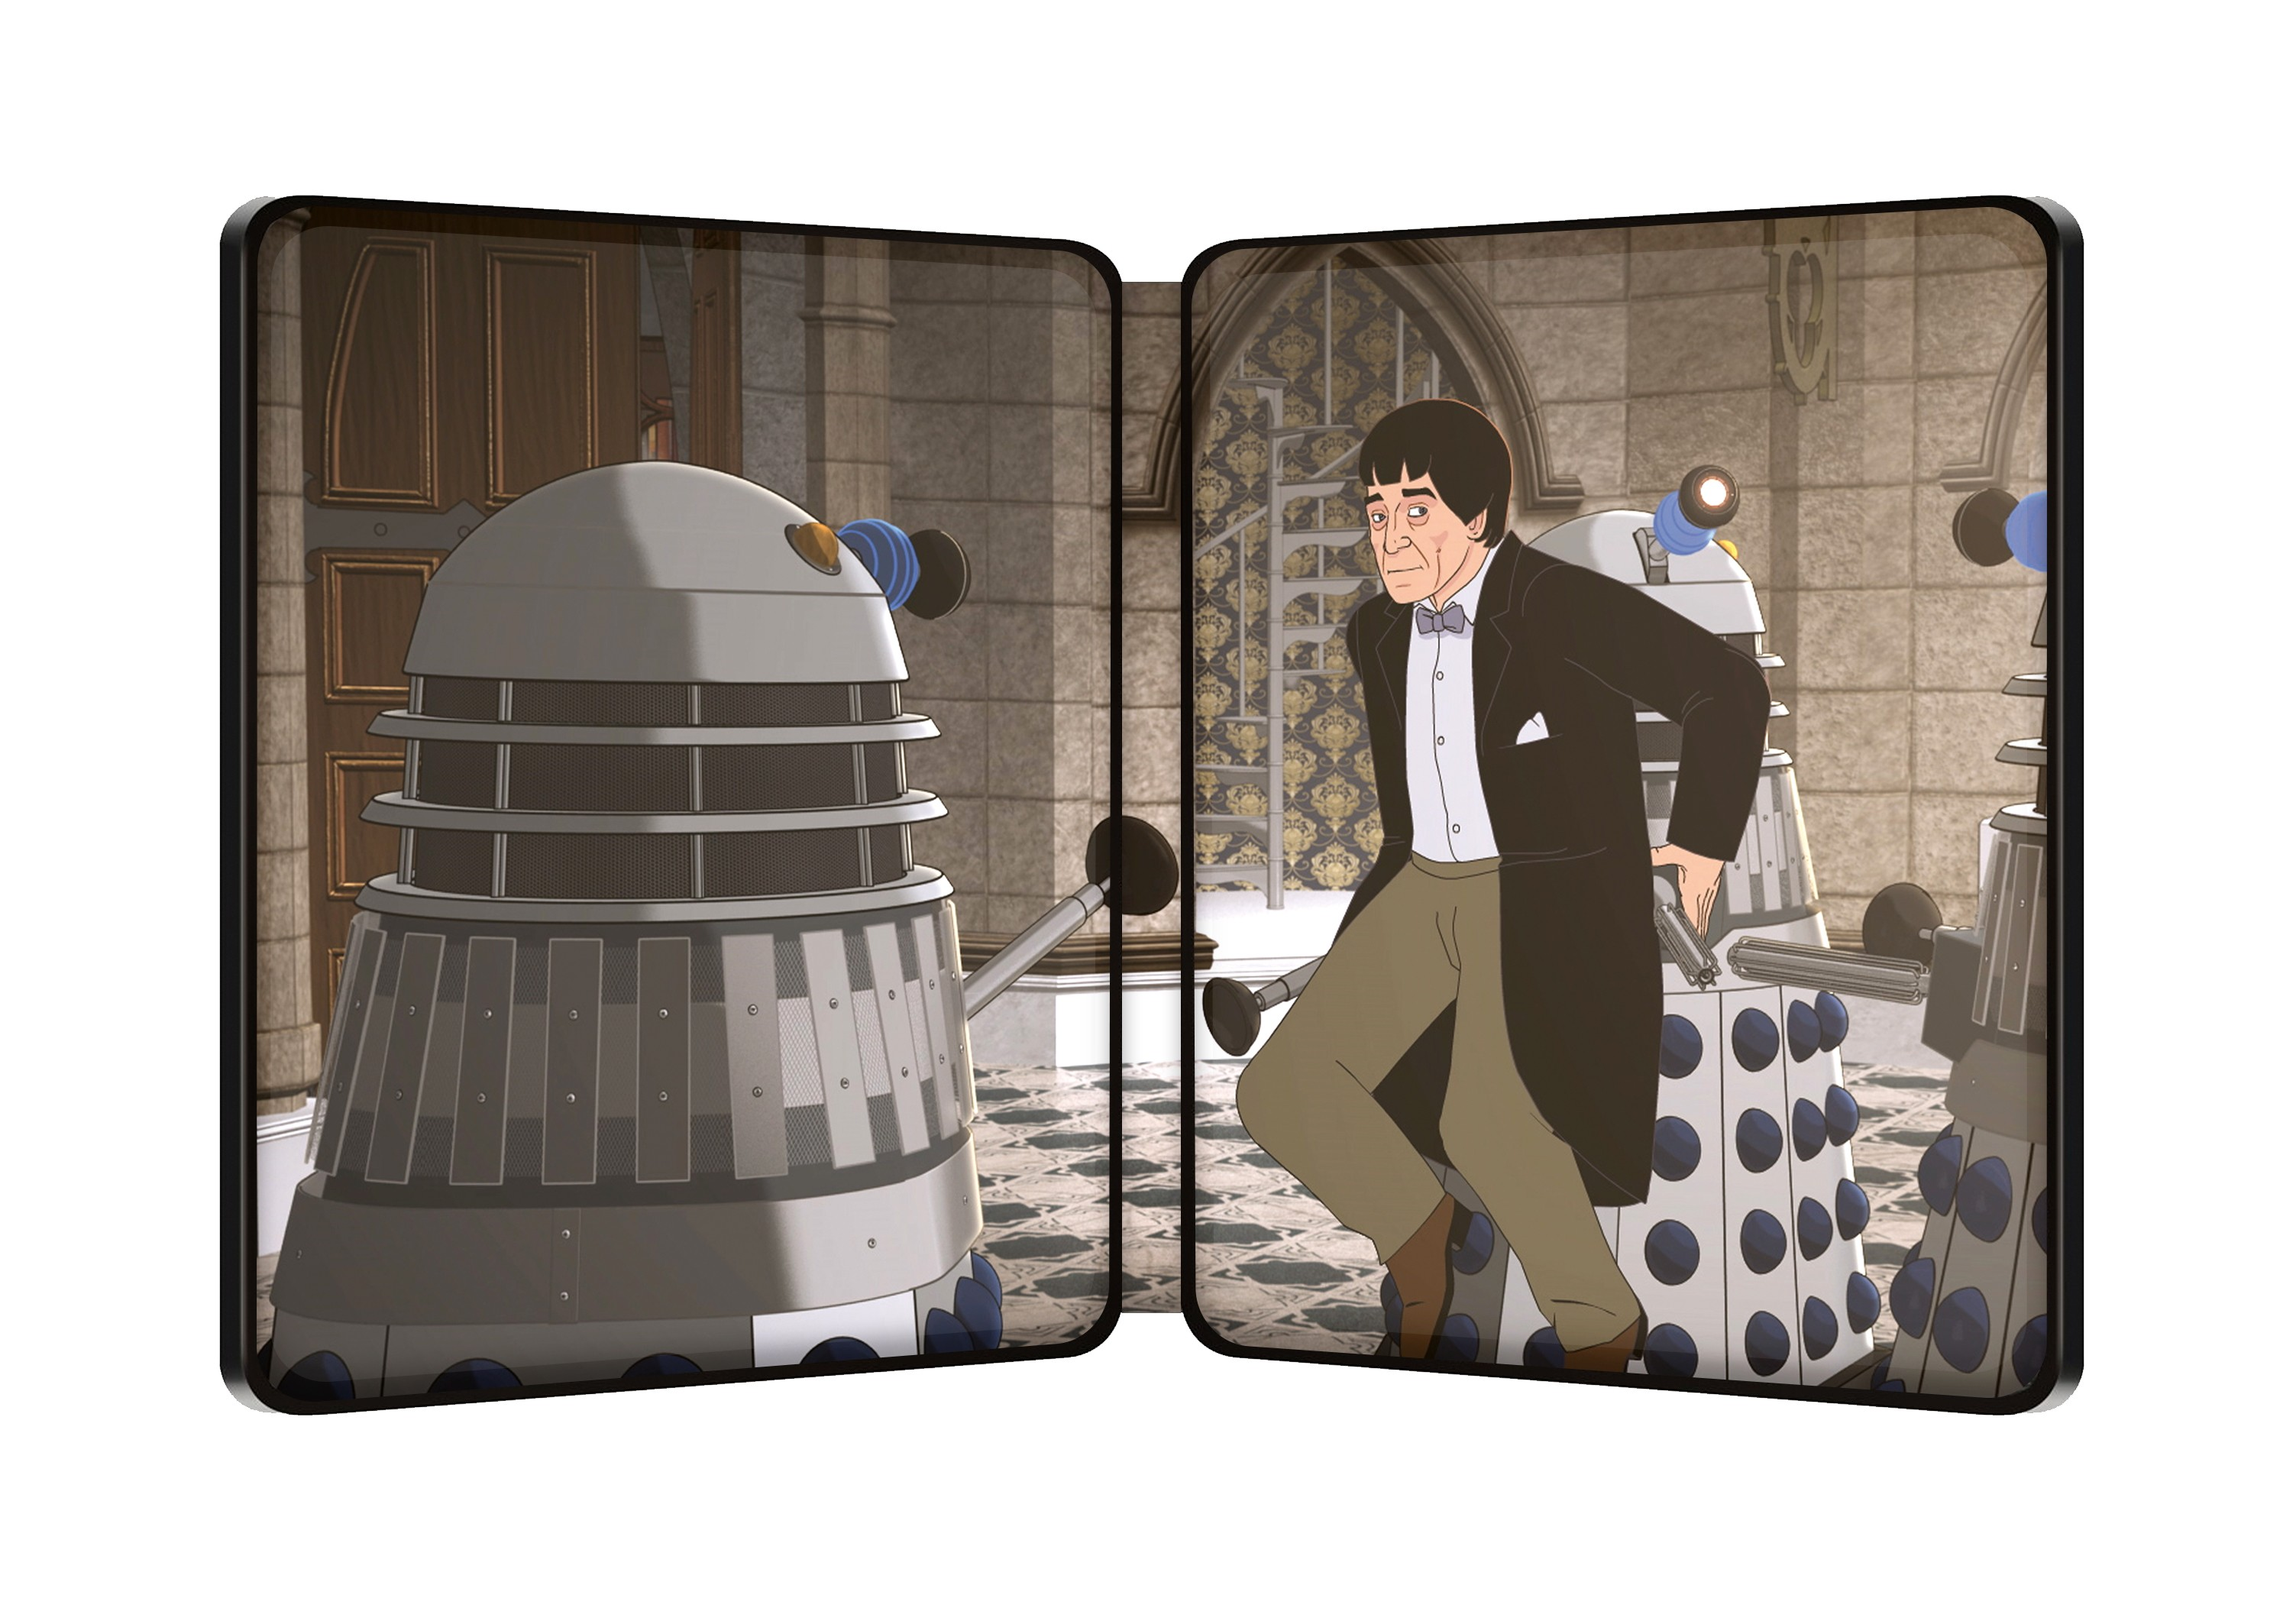 Doctor Who - The Evil of the Daleks